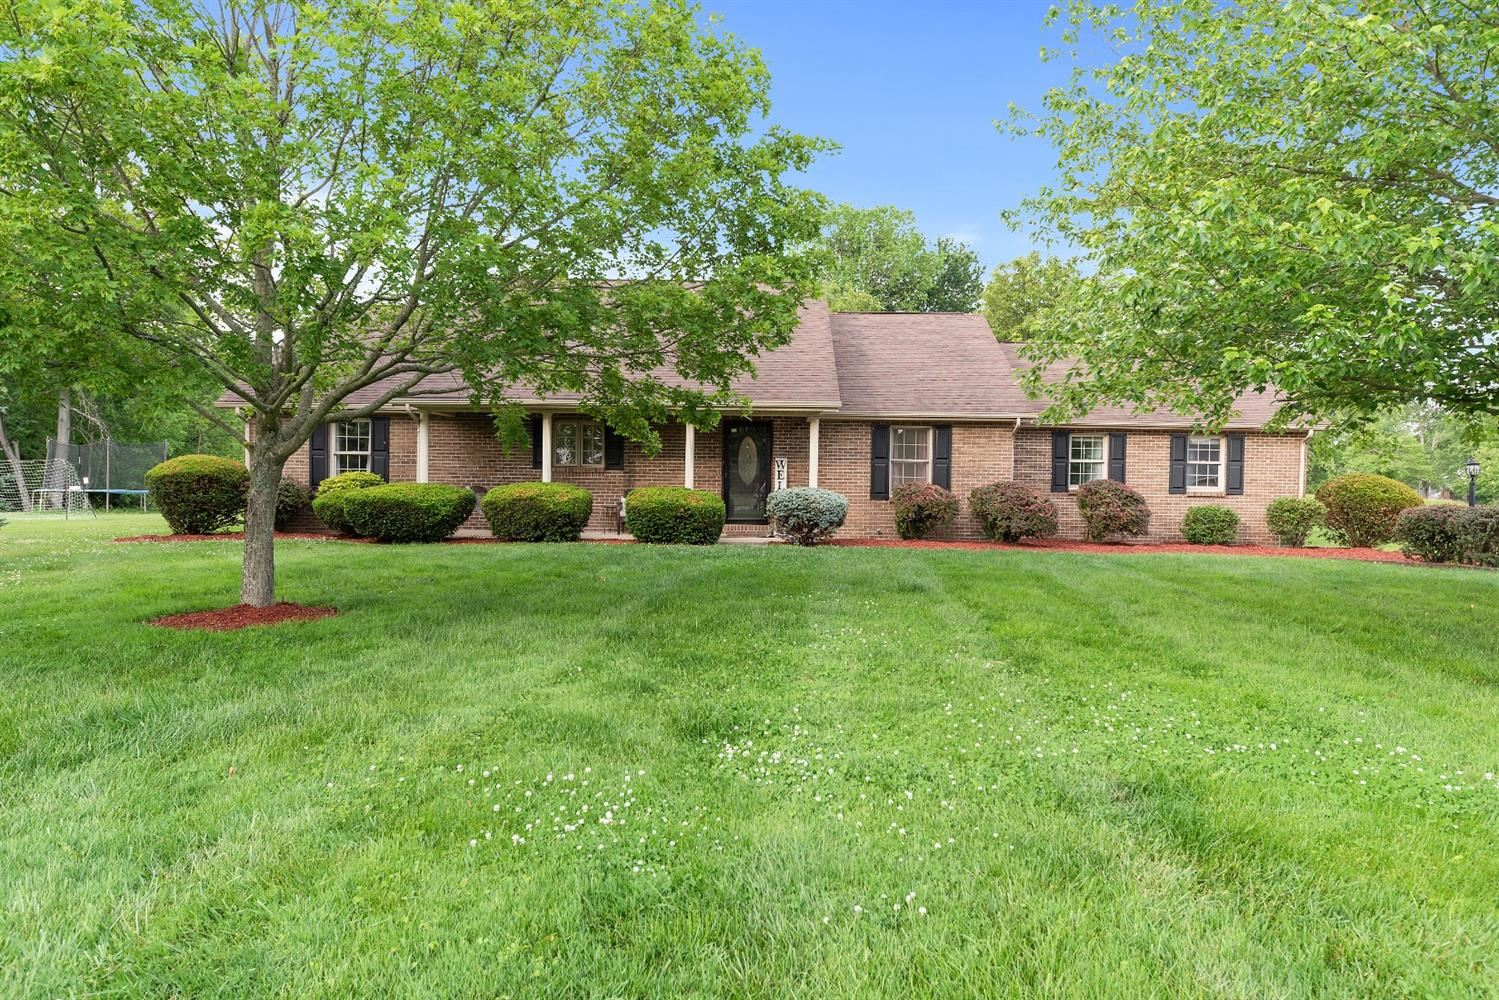 40 Straight Drive, Pleasant Township, OH 45121 - #: 1701812